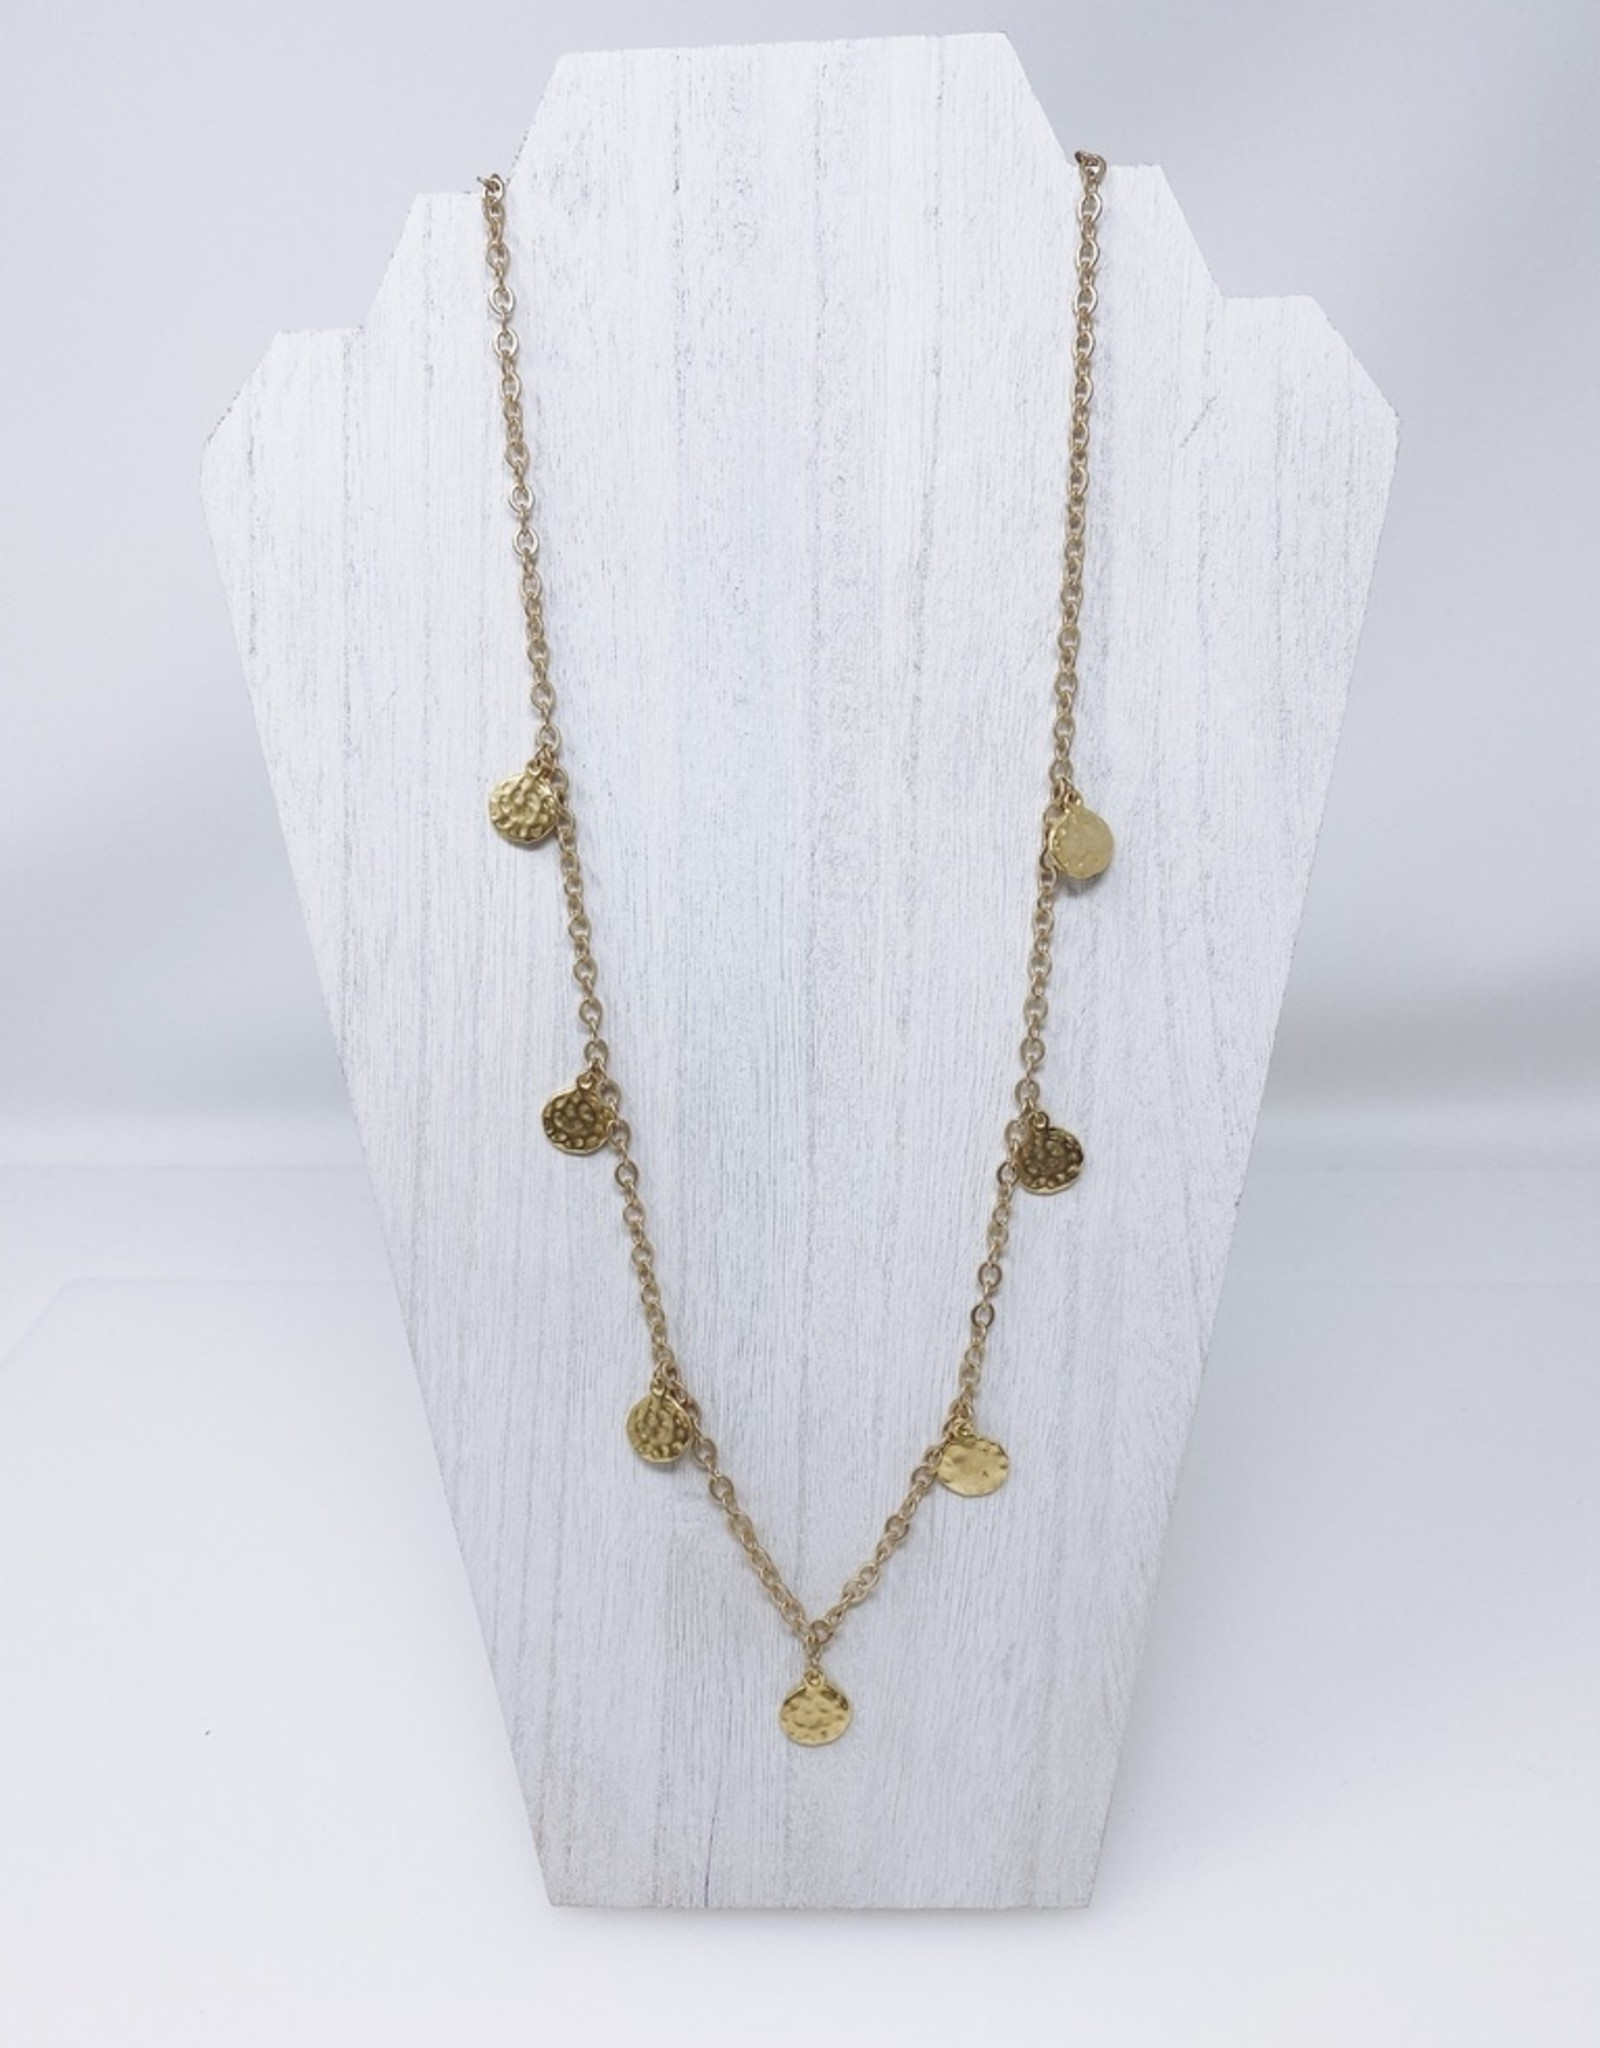 Sister Golden Hair Necklace